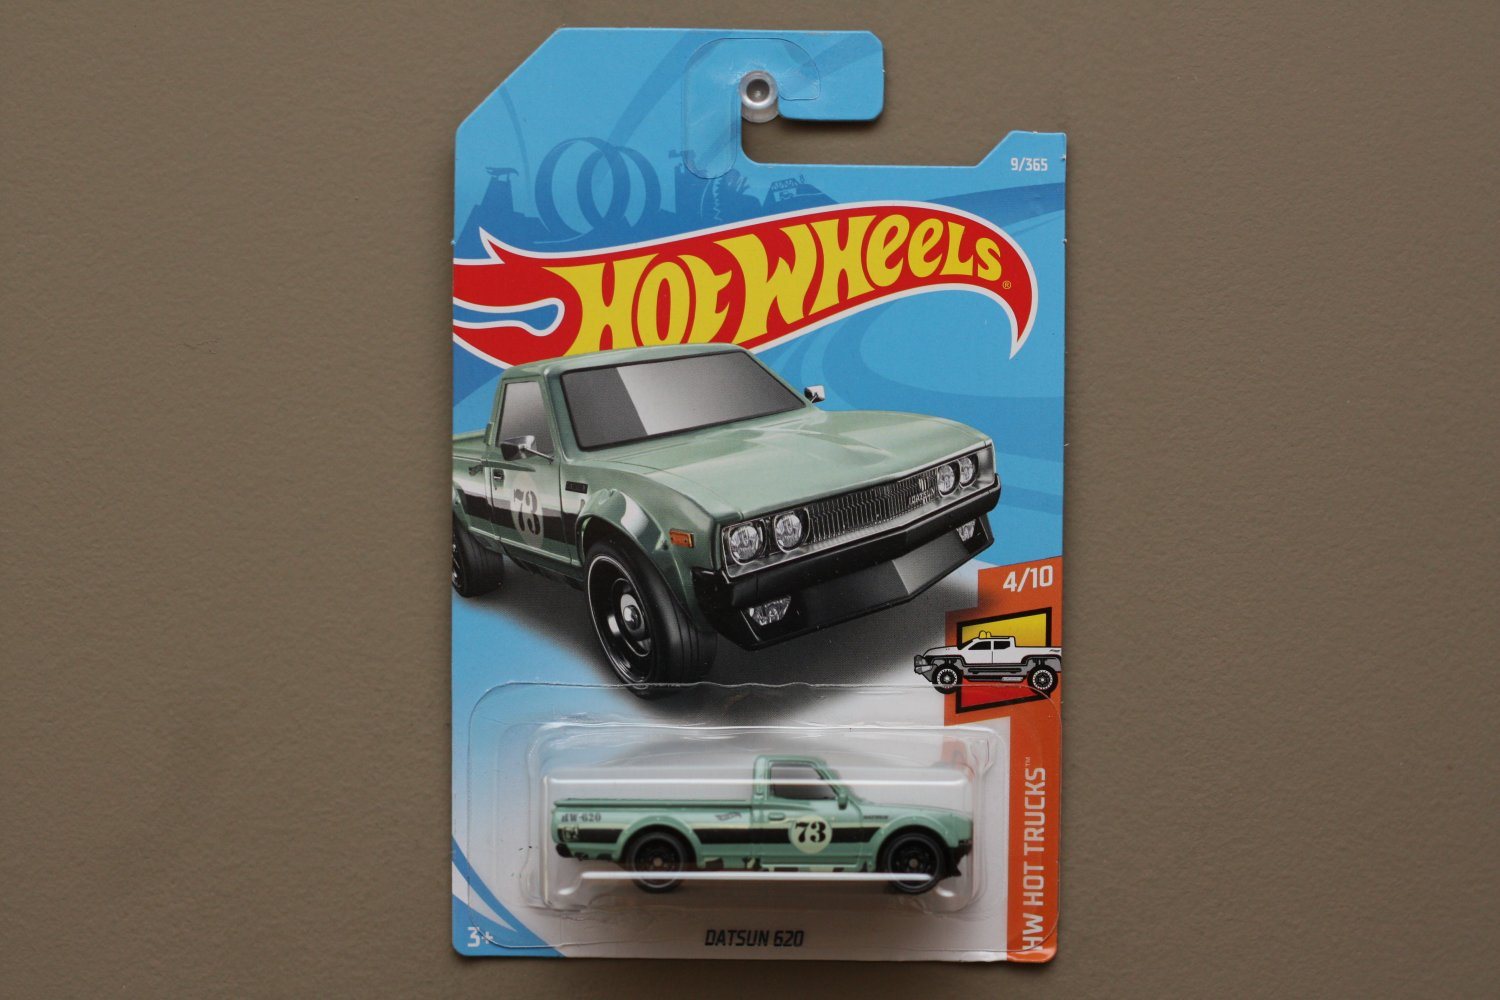 Hot Wheels 2018 HW Hot Trucks Datsun 620 (vintage green)